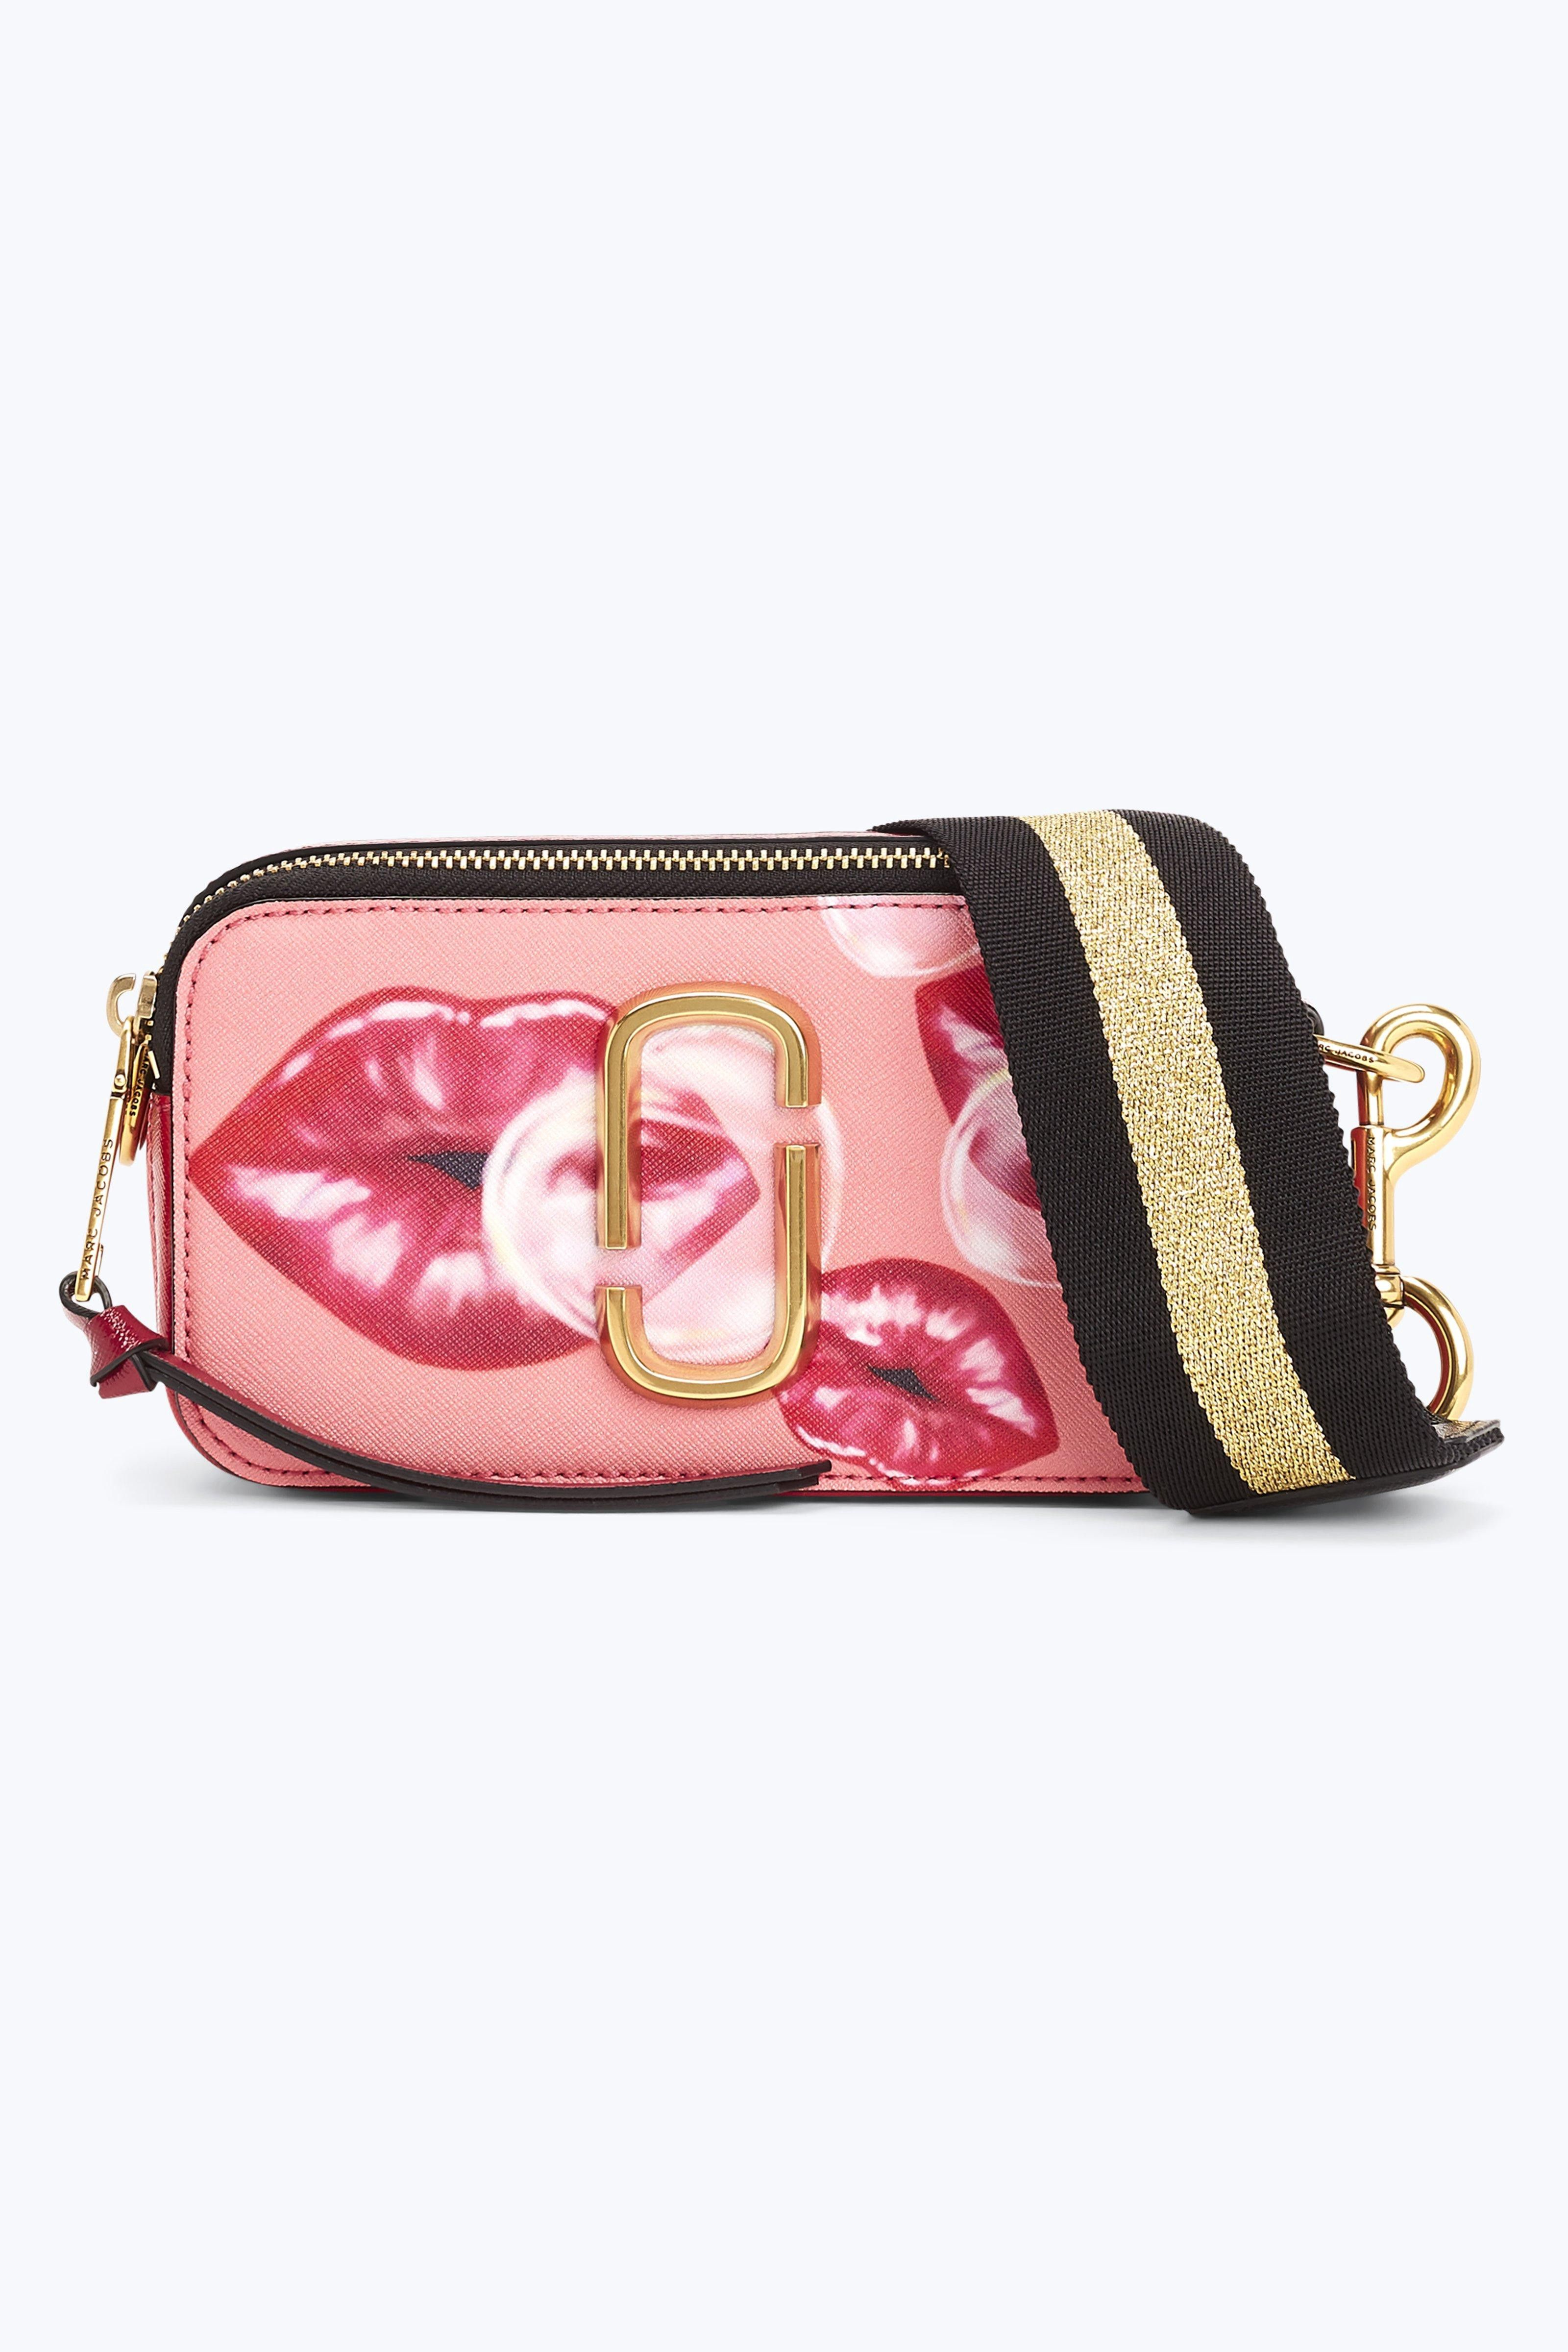 9eee31d5c MARC JACOBS Printed Lips Snapshot Small Camera Bag. #marcjacobs ...